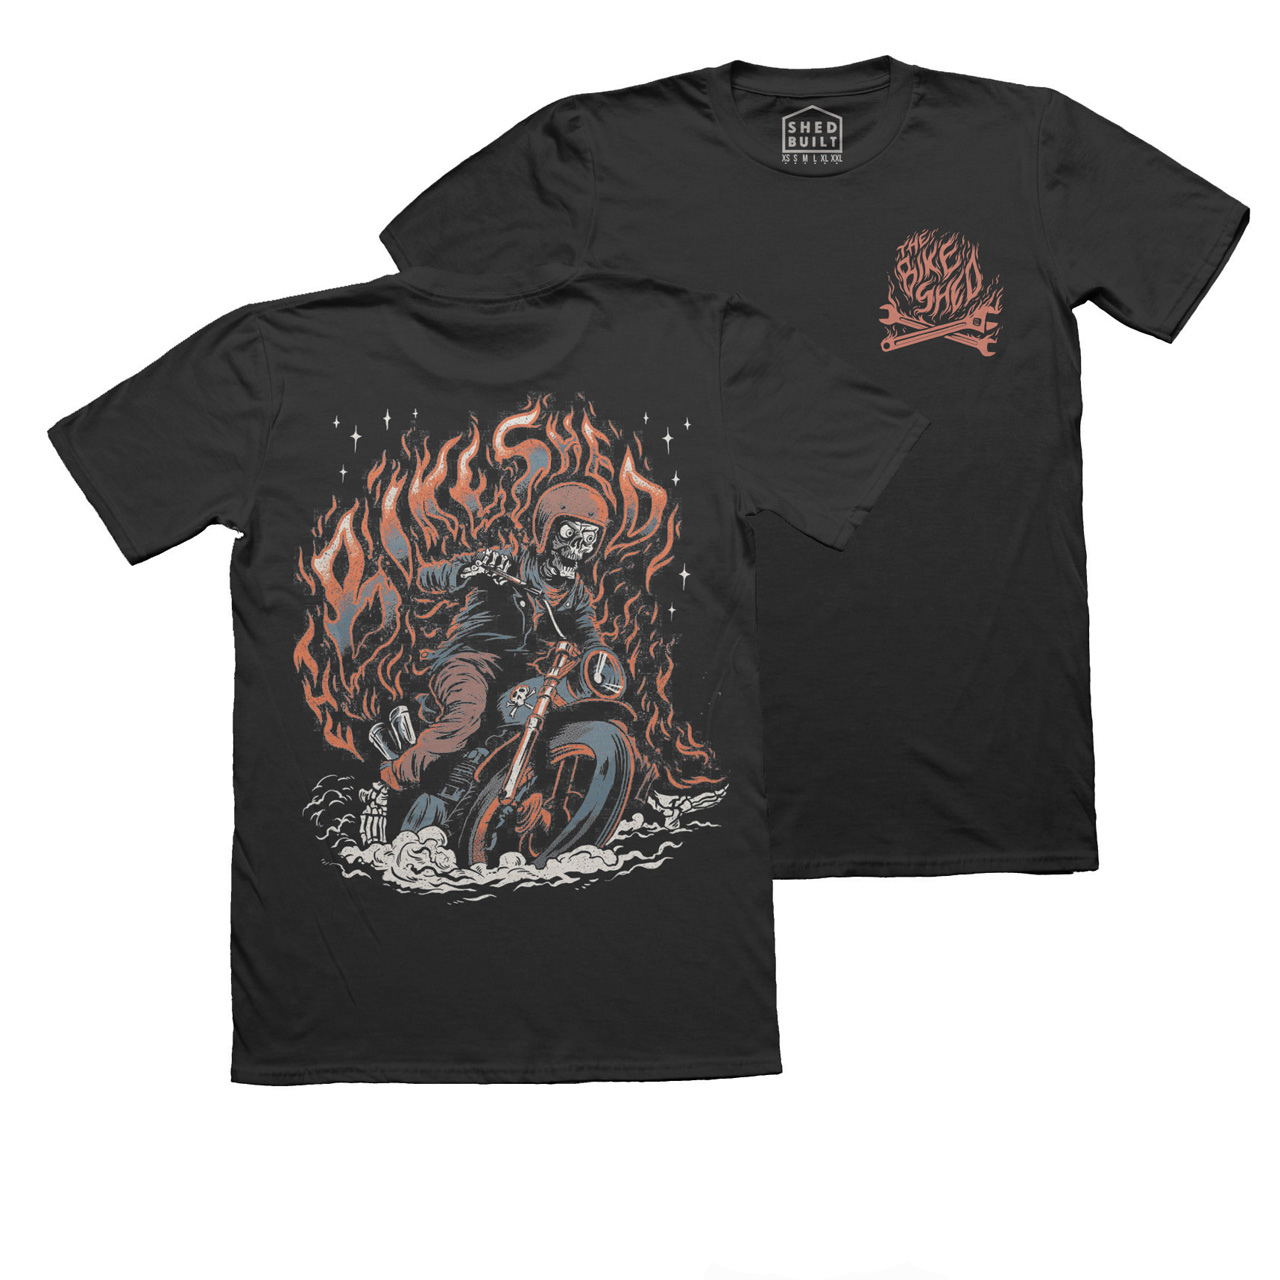 BIKE_SHED_DEMON_T_SHIRT